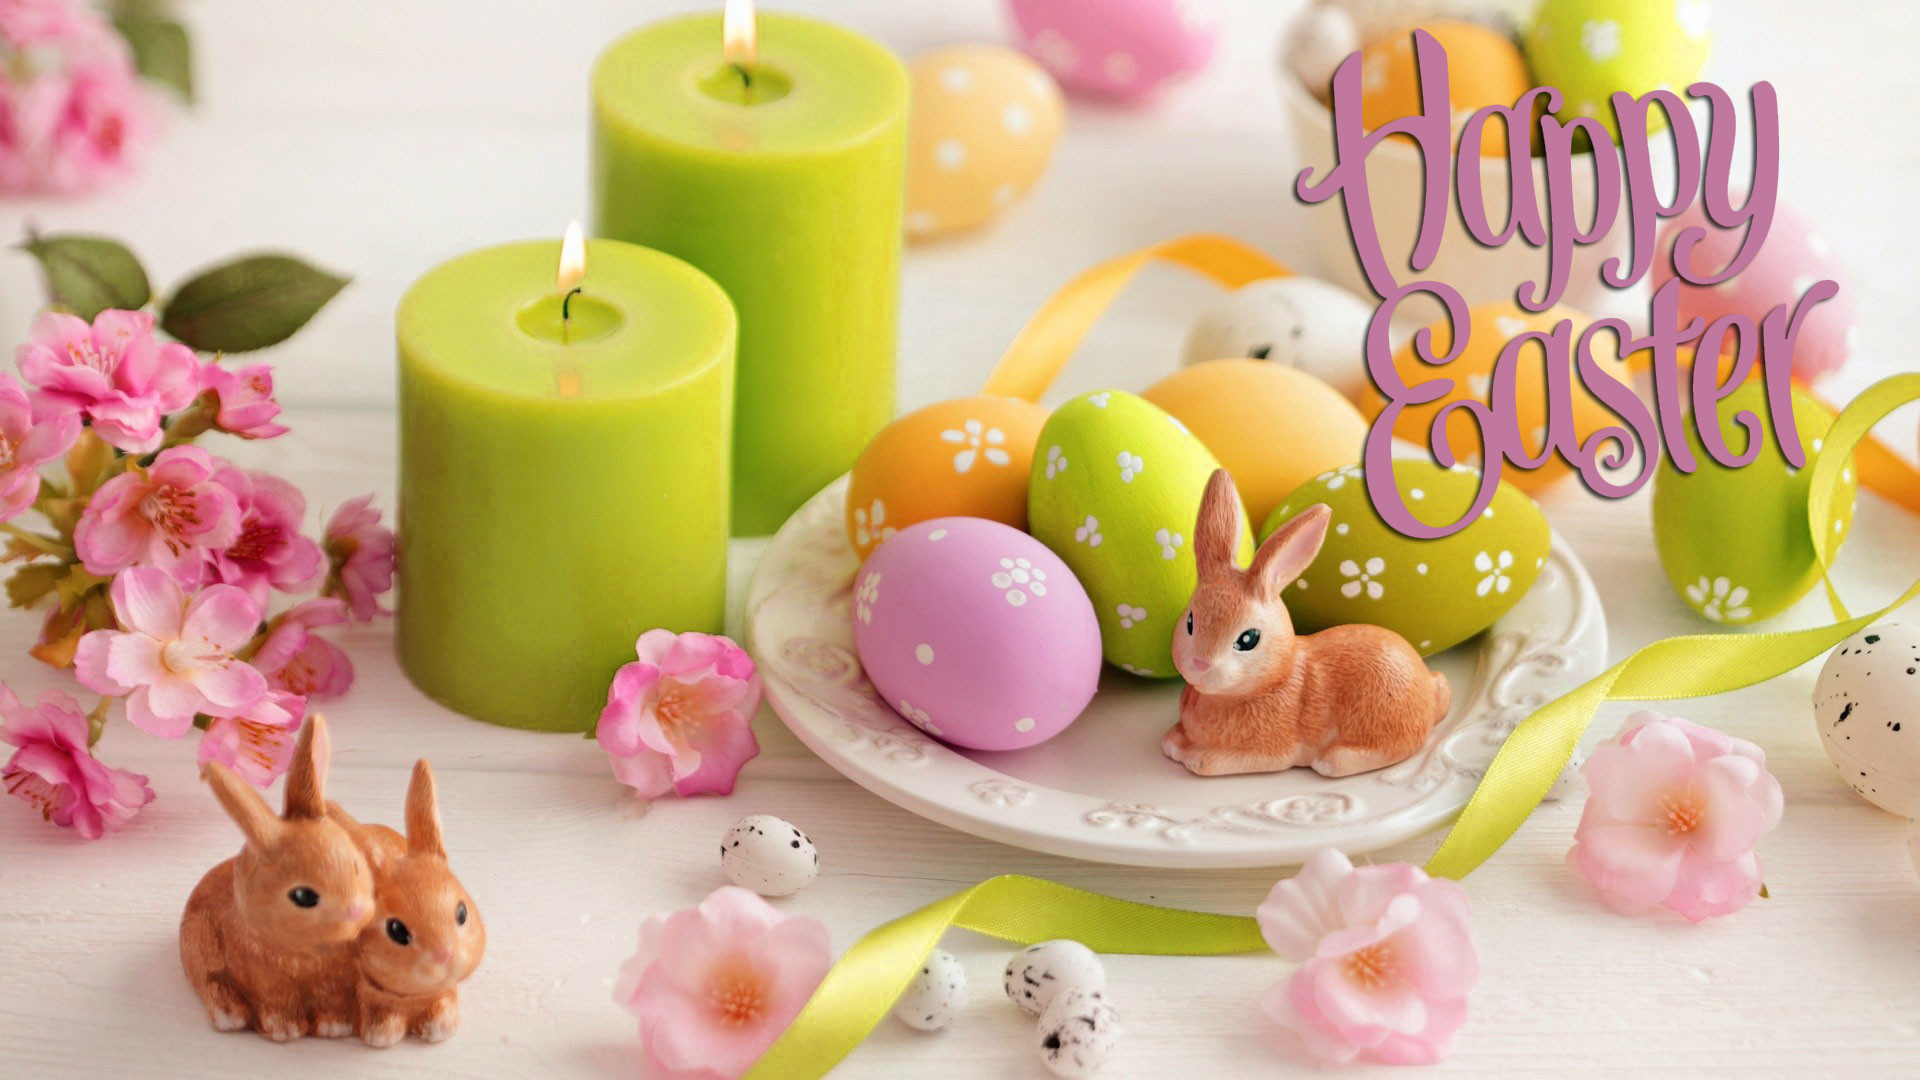 Happy Easter Wallpapers 64 Pictures